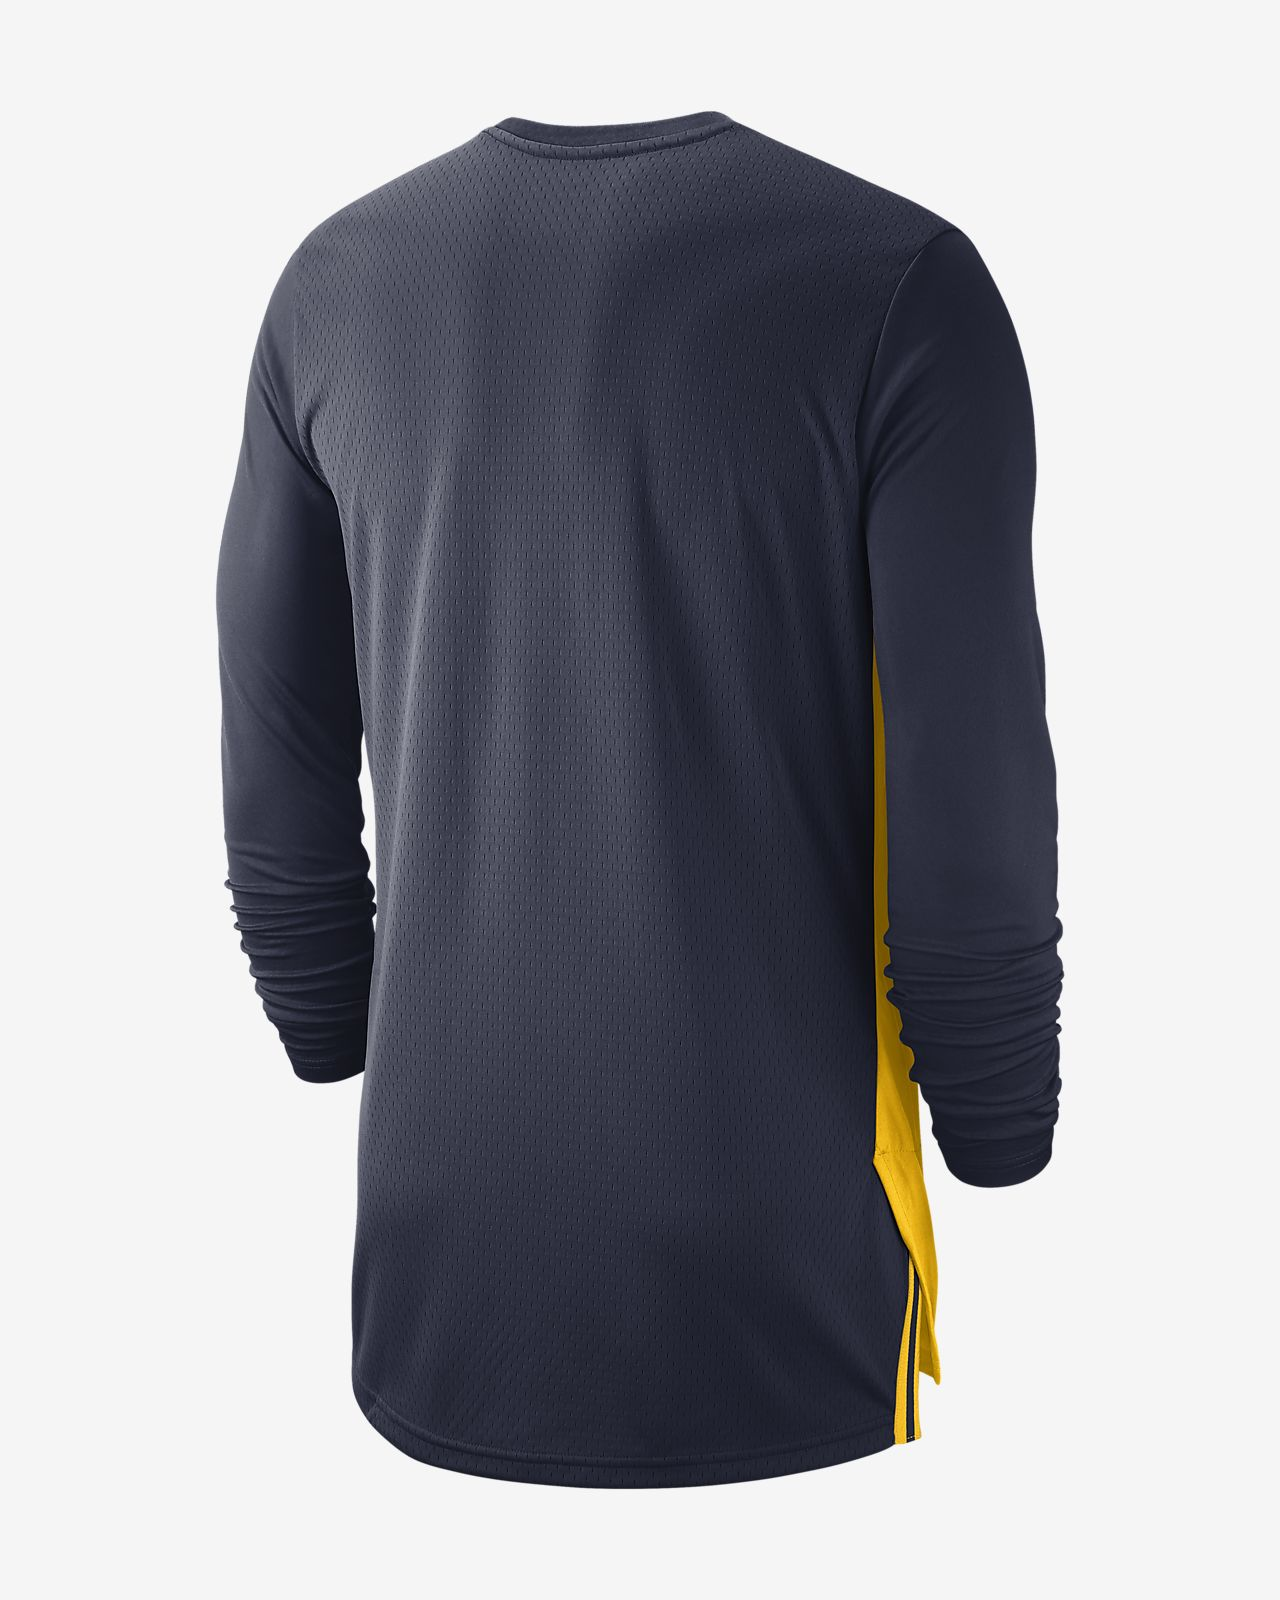 30ba4172802b78 Jordan College Dri-FIT (Michigan) Men s Long-Sleeve Basketball Top ...